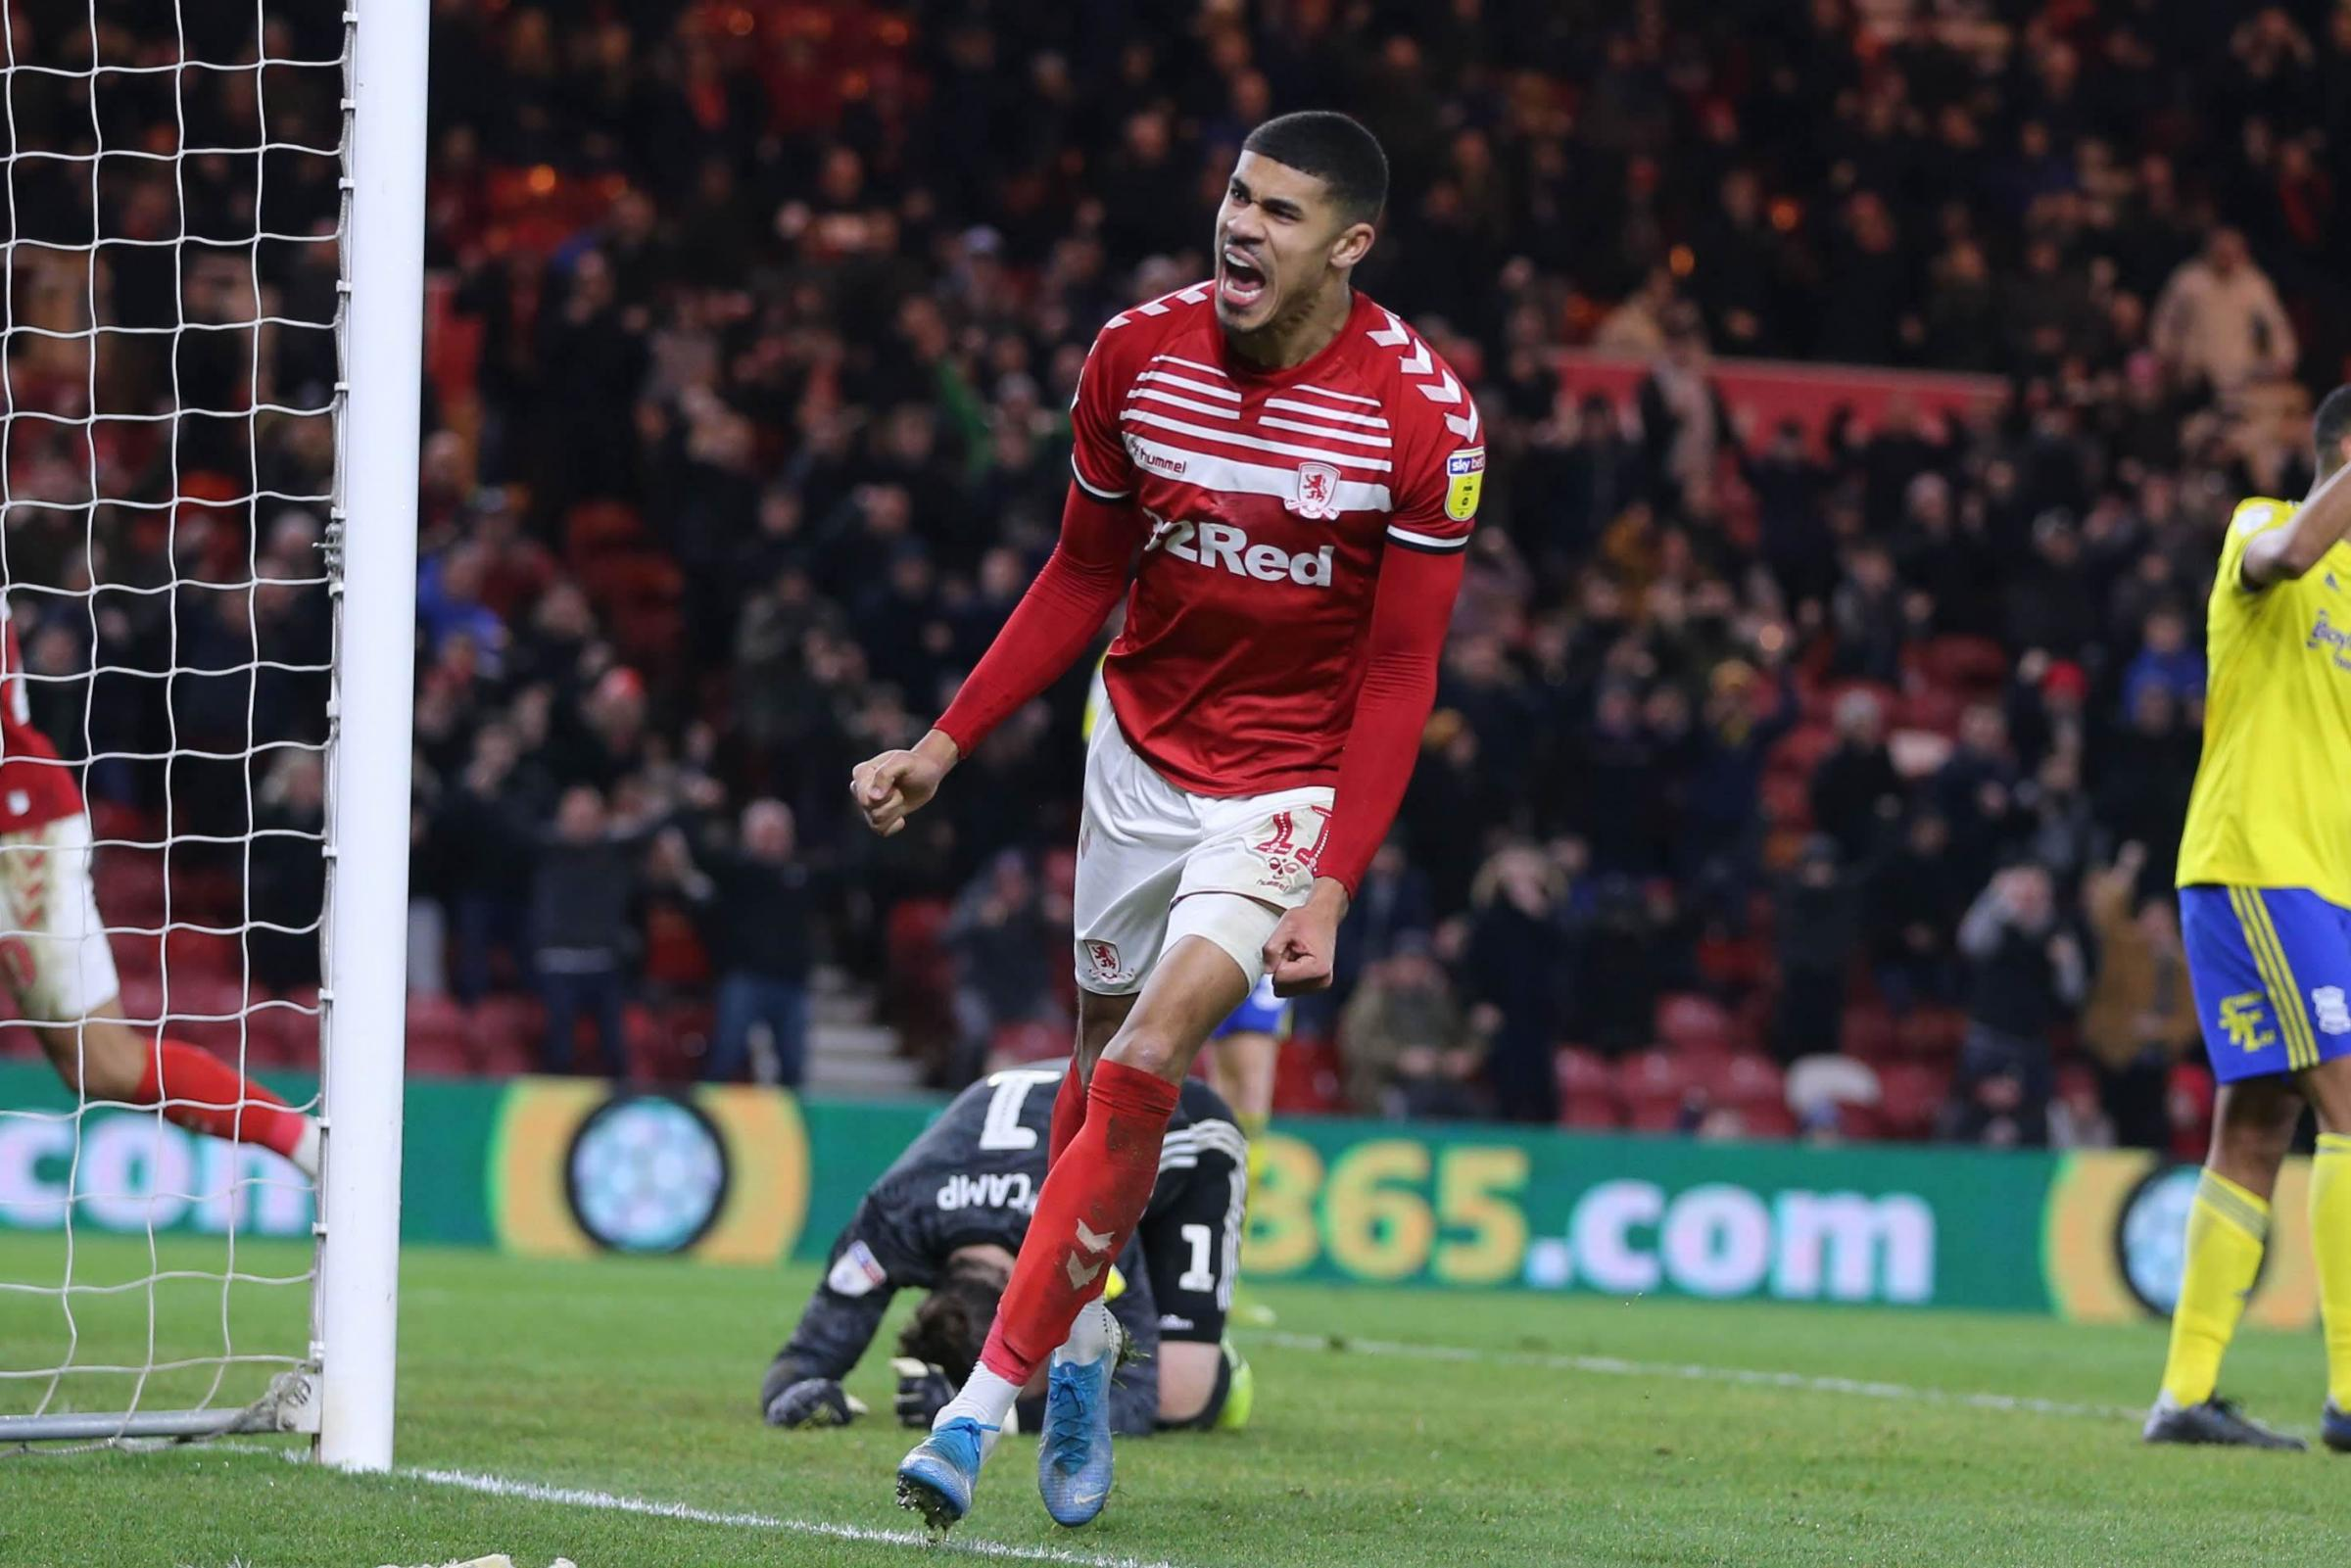 Middlesbrough 1 Birmingham City 1: A dramatic draw at the Riverside